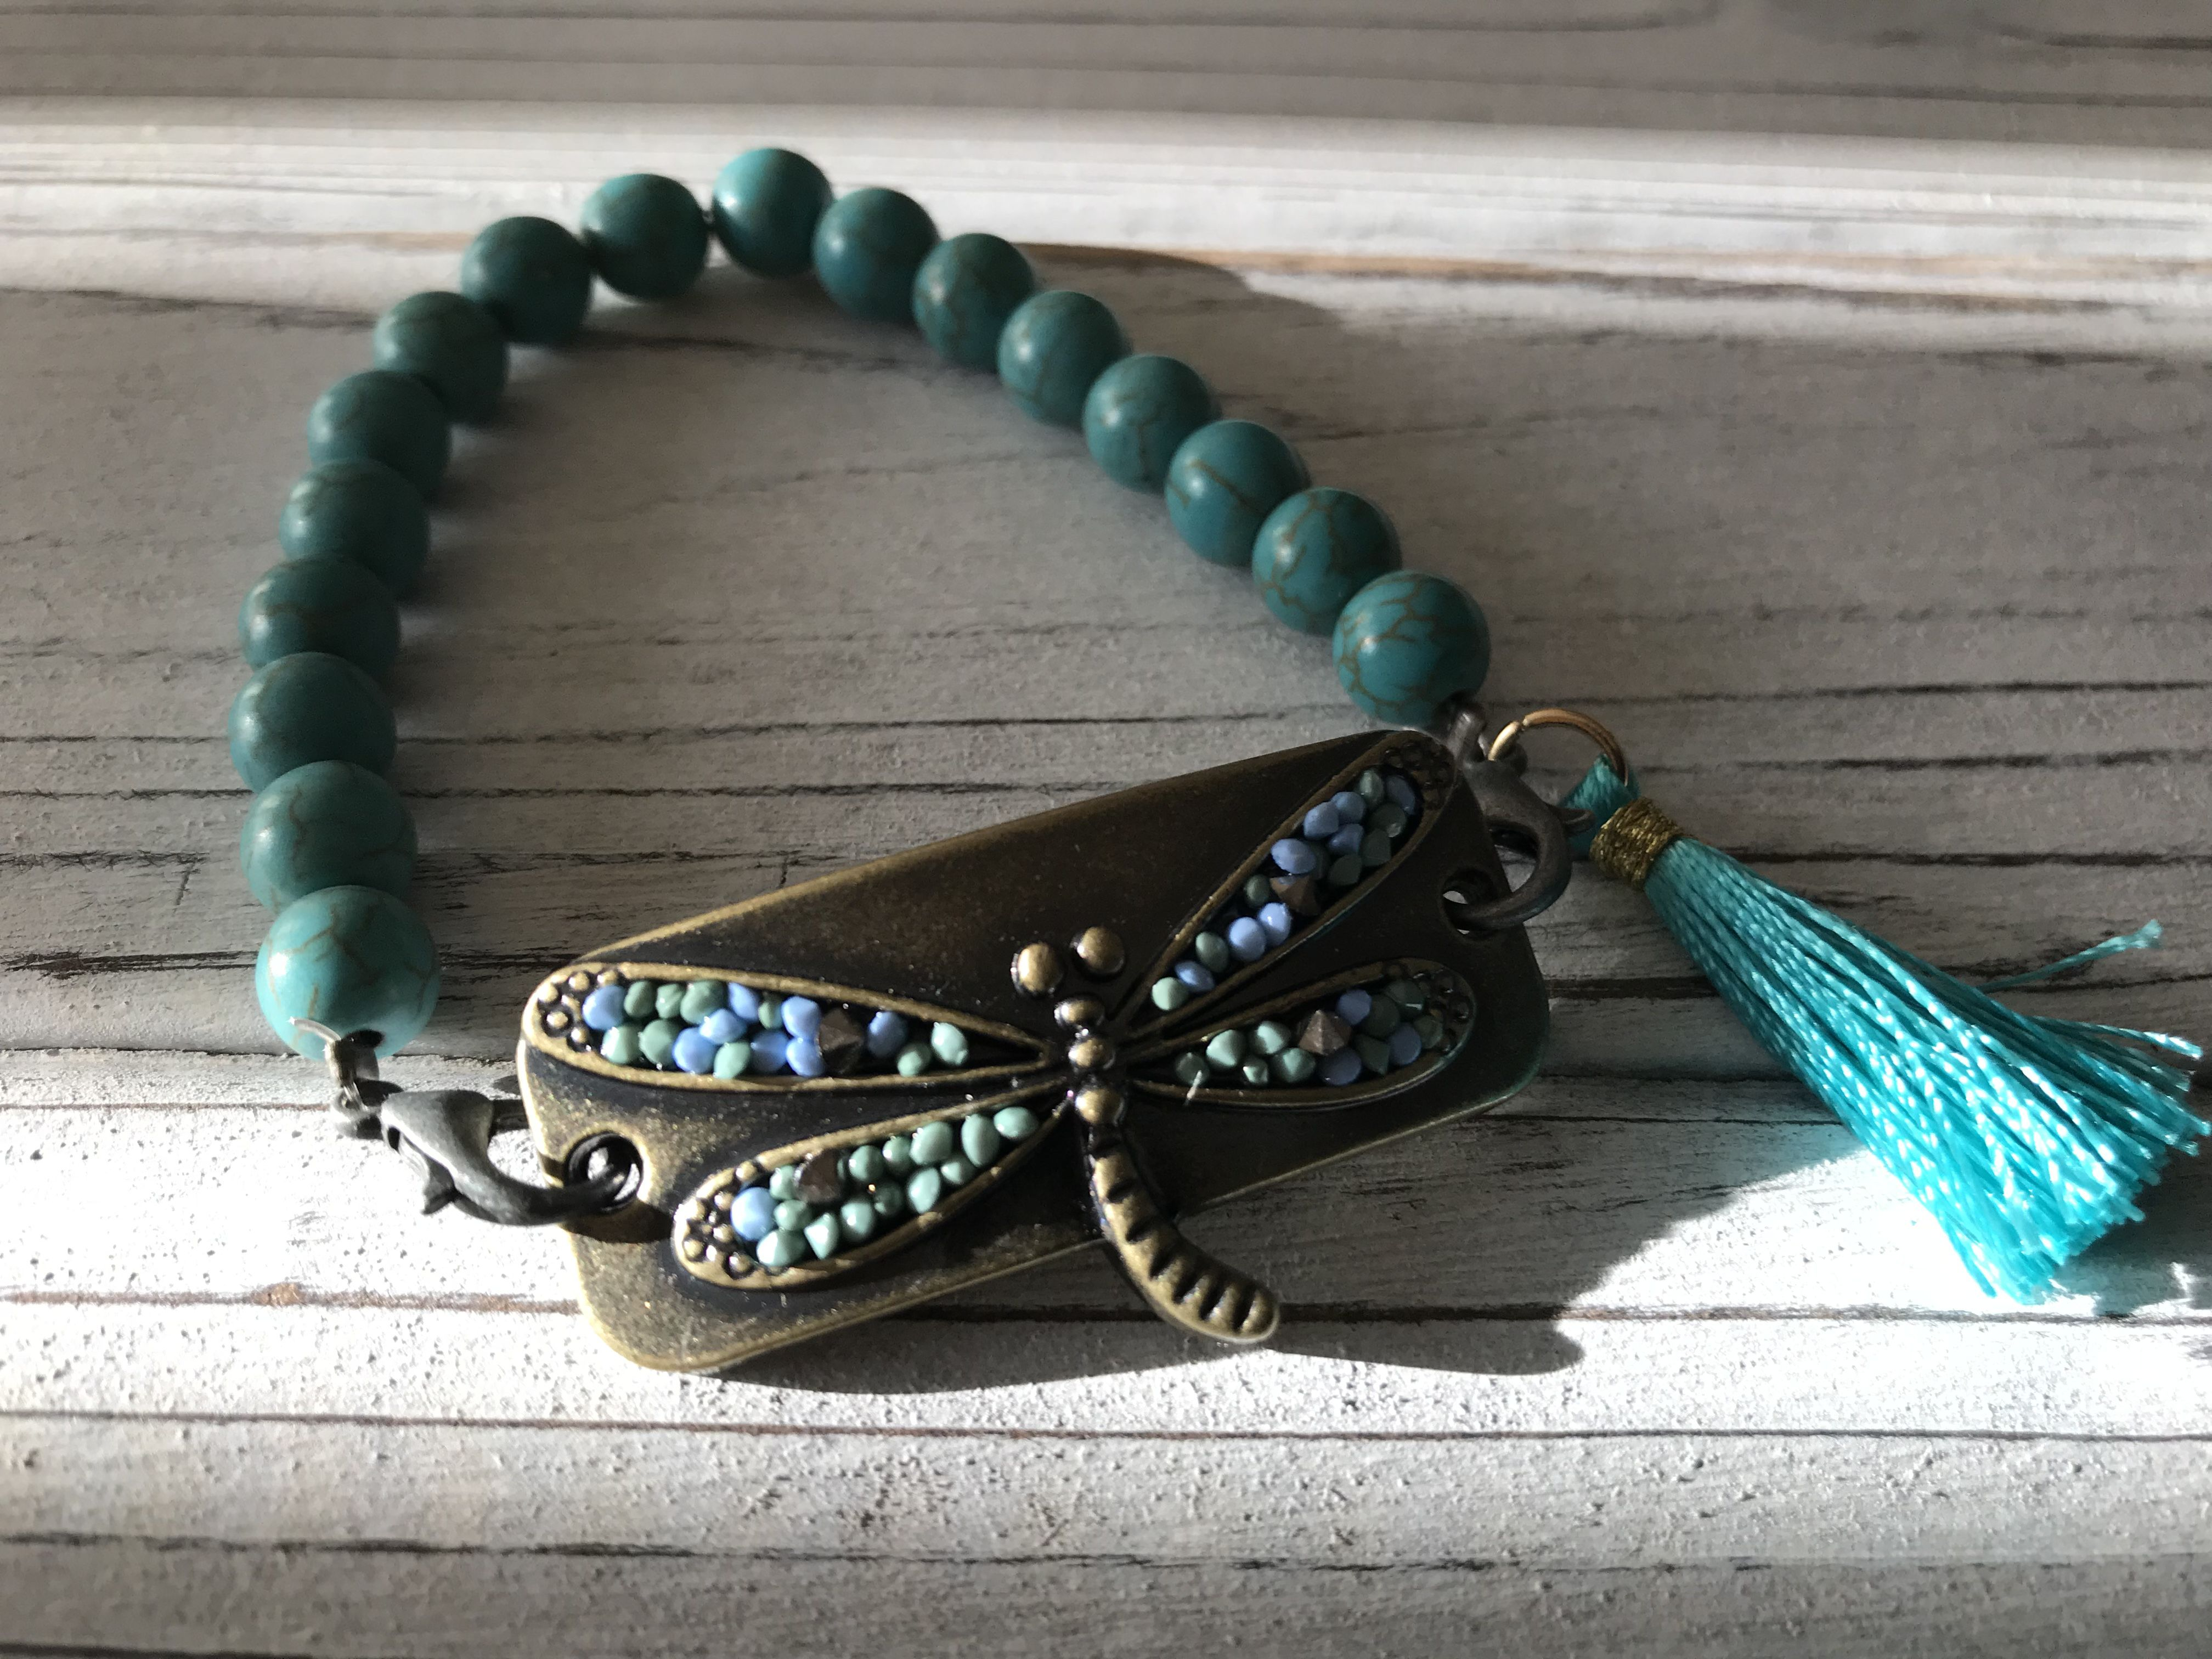 nautical positiveenergy elephant leather madewithlove clipon hearts tassels anchor owls cross dragonfly turquoise handmade chains brass beads stackable gypsy